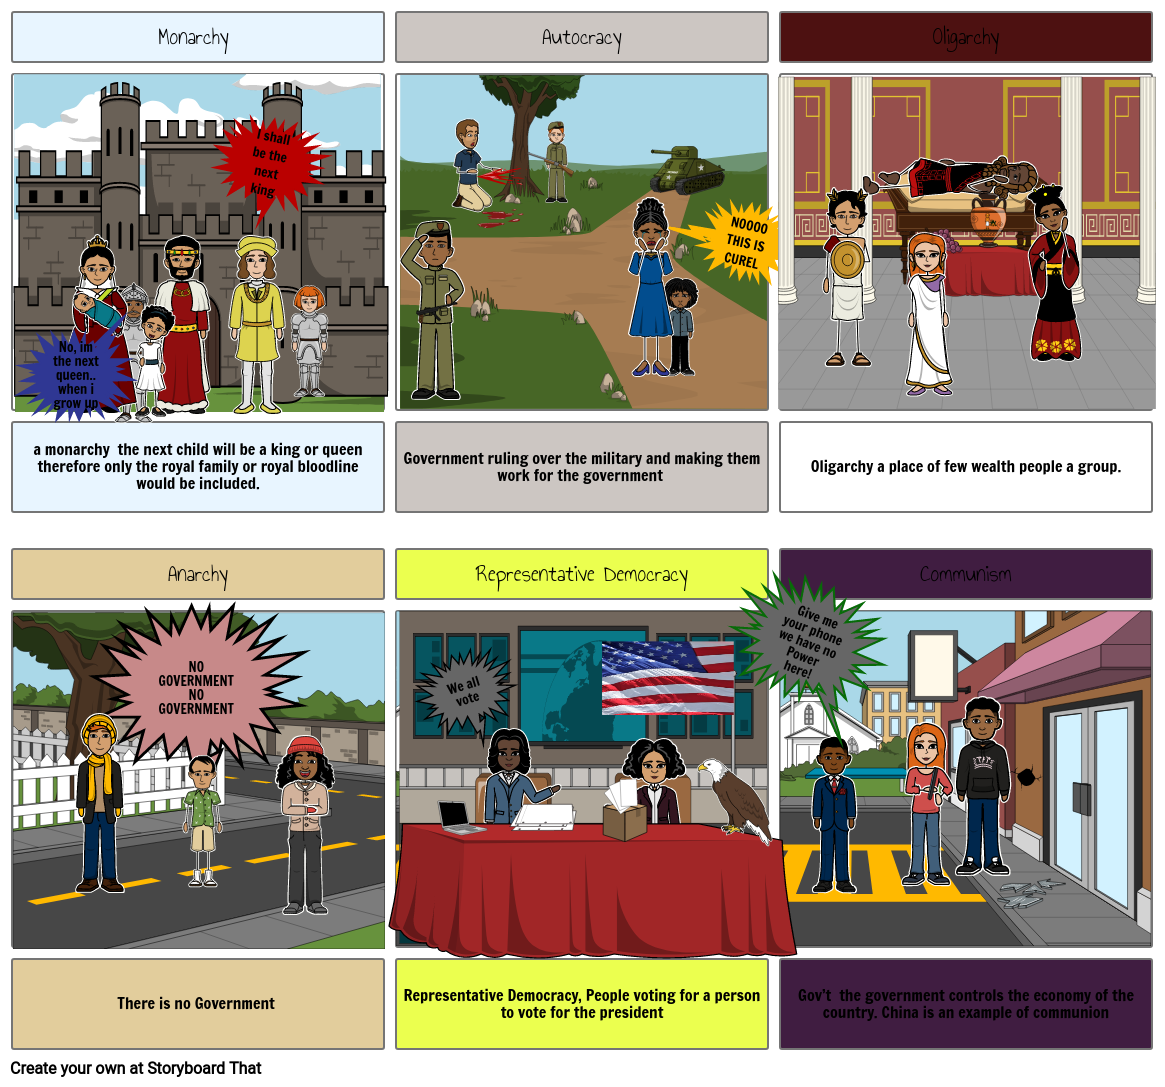 Forms of gov't